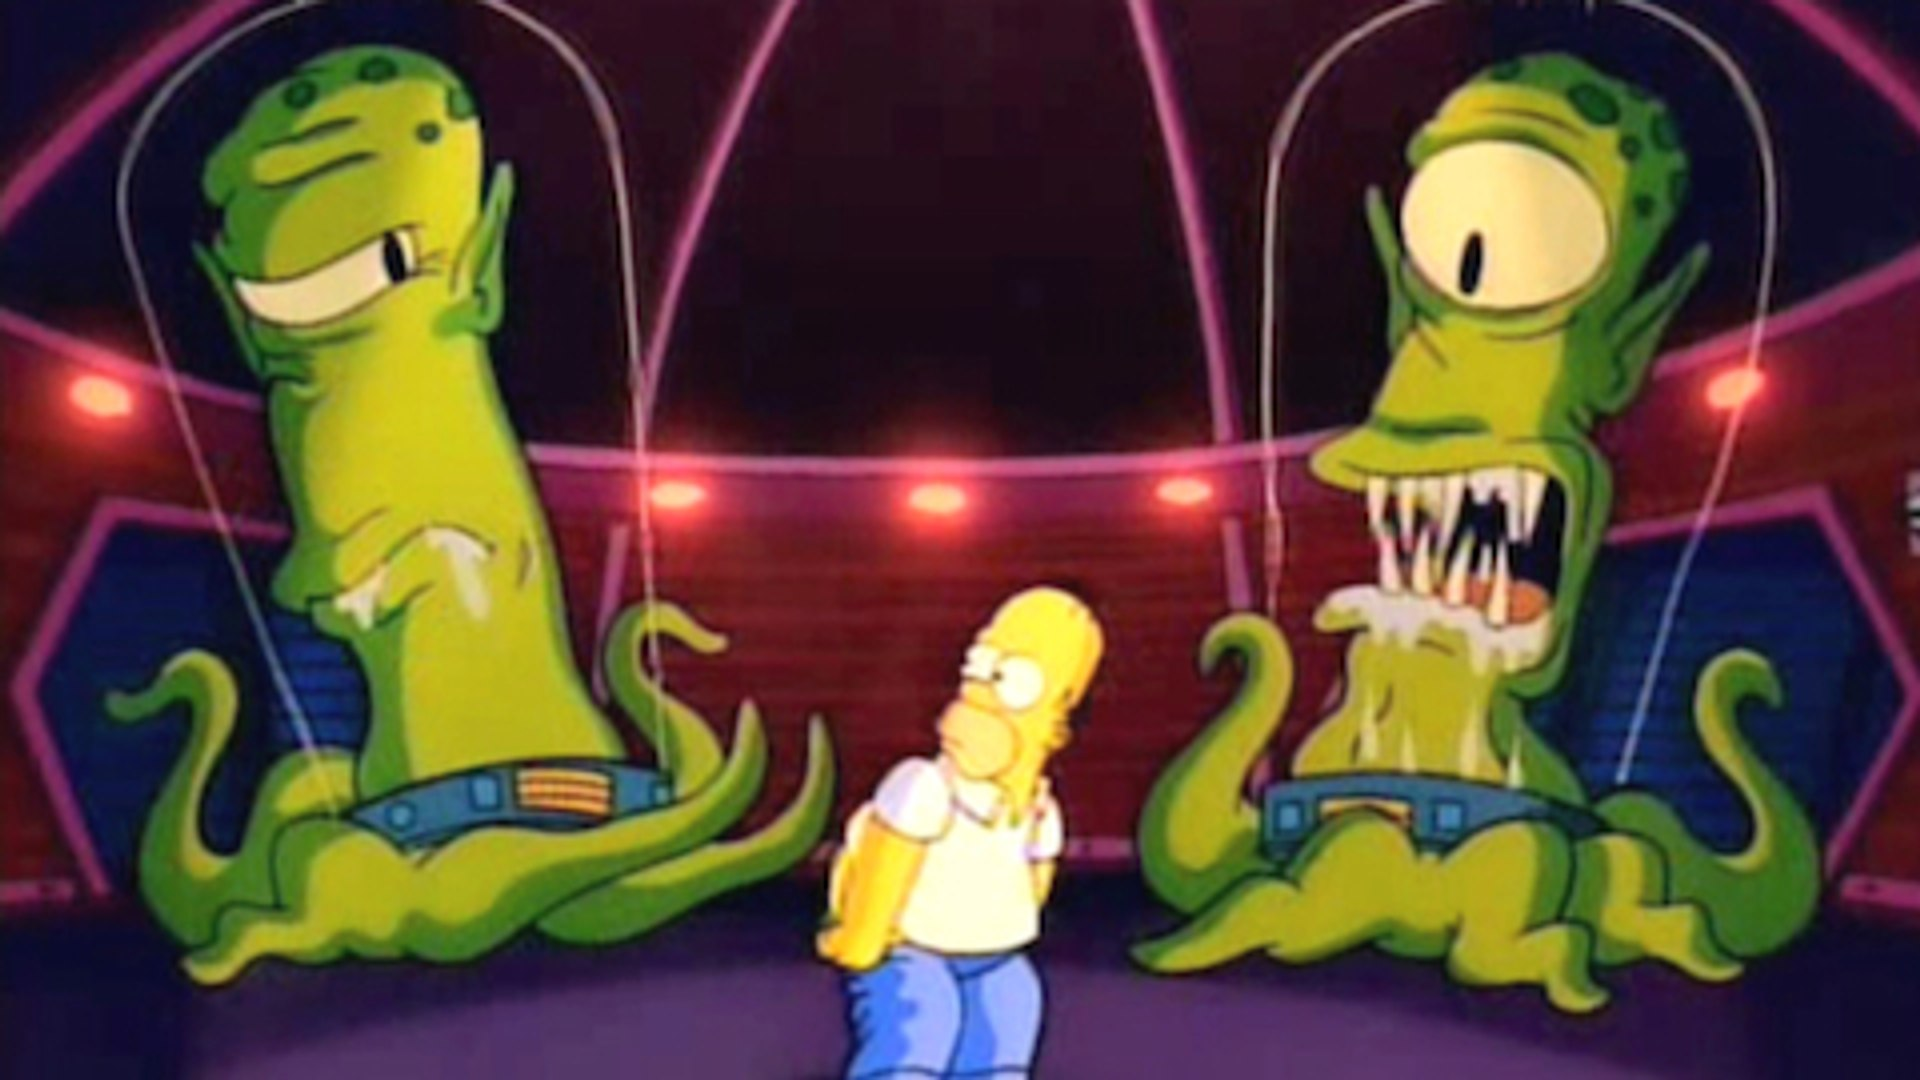 Top 10 Cartoon Aliens in Movies and TV